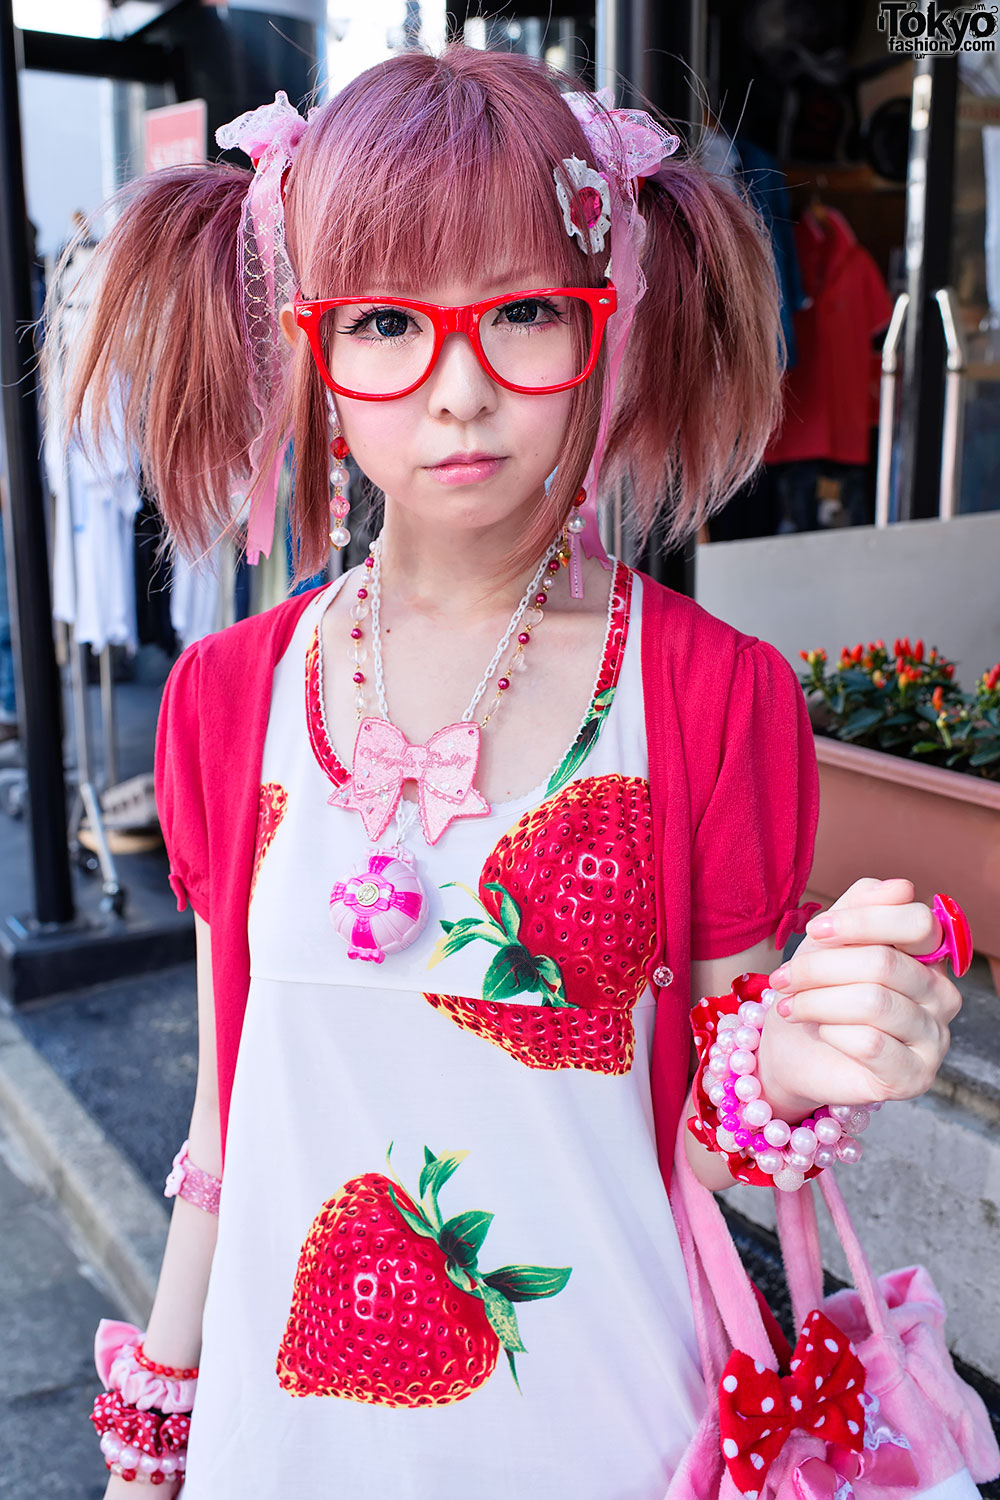 Moco In Harajuku W Super Cute Strawberry Themed Style My Melody